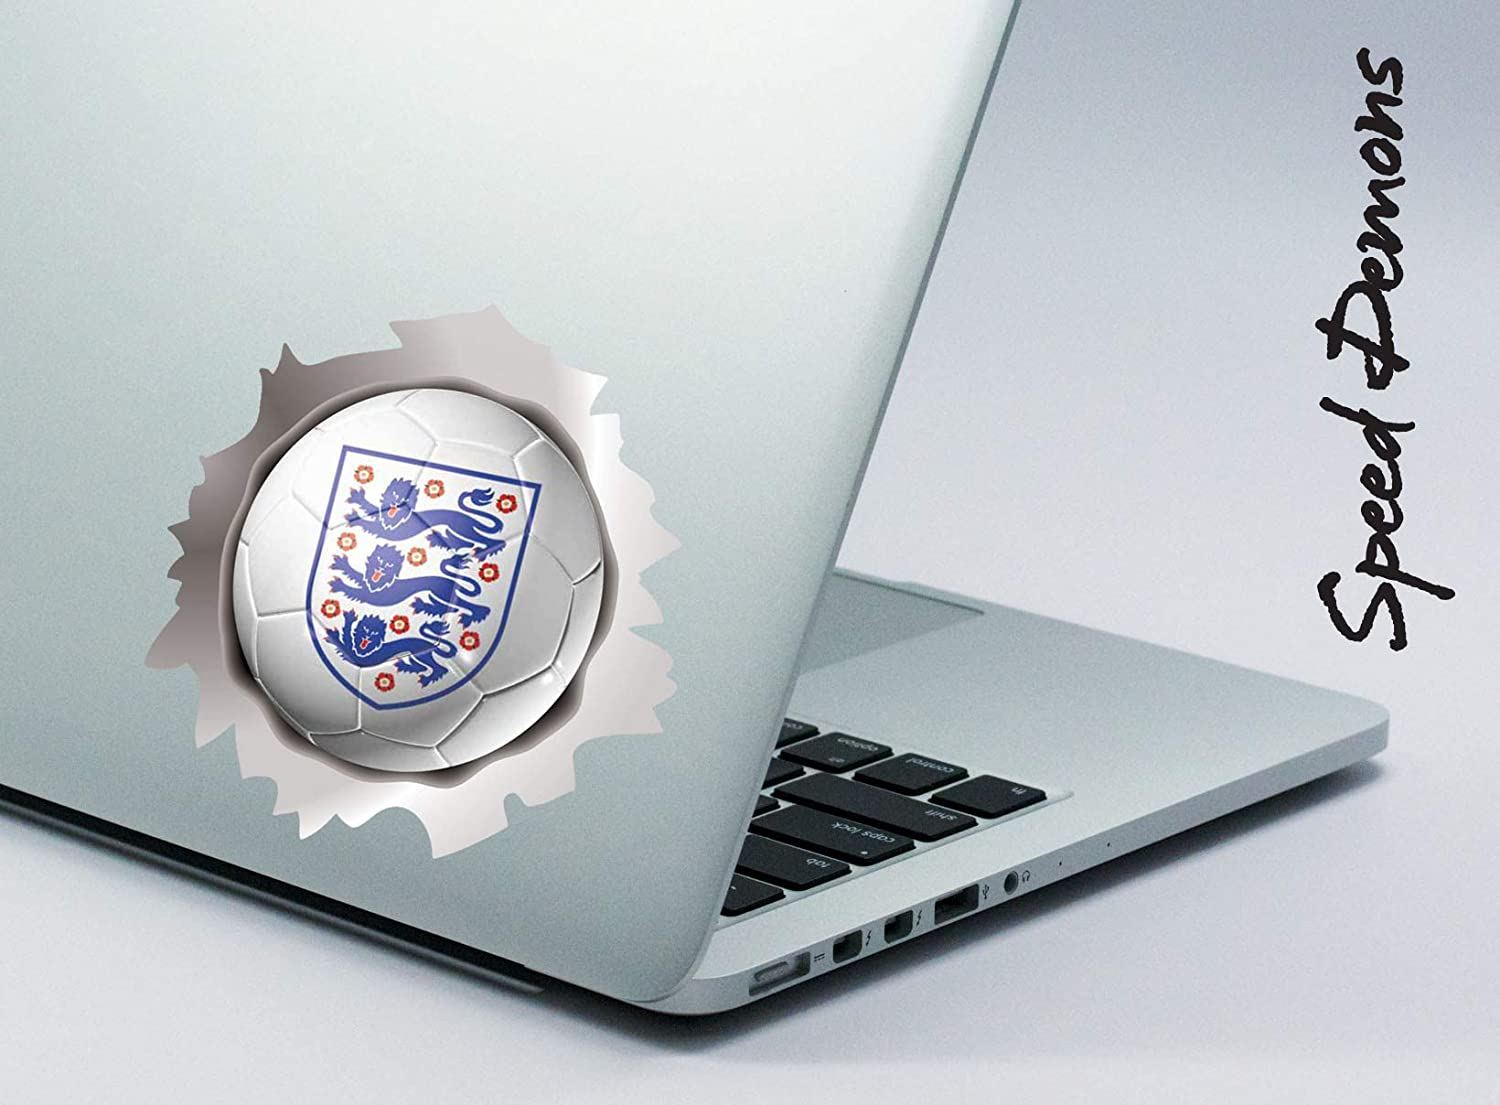 ENGLAND 3 THREE LIONS SPEED DEMONS FOOTBALL BALL PRIDE BURST RIP TORN TEAR STICKER GRAPHIC SELF ADHESIVE FOR ANY SURFACE INCLUDING LAPTOPS AND CARS NO DAMAGE TO PAINTWORK APPROX 145 MM X 145 MM